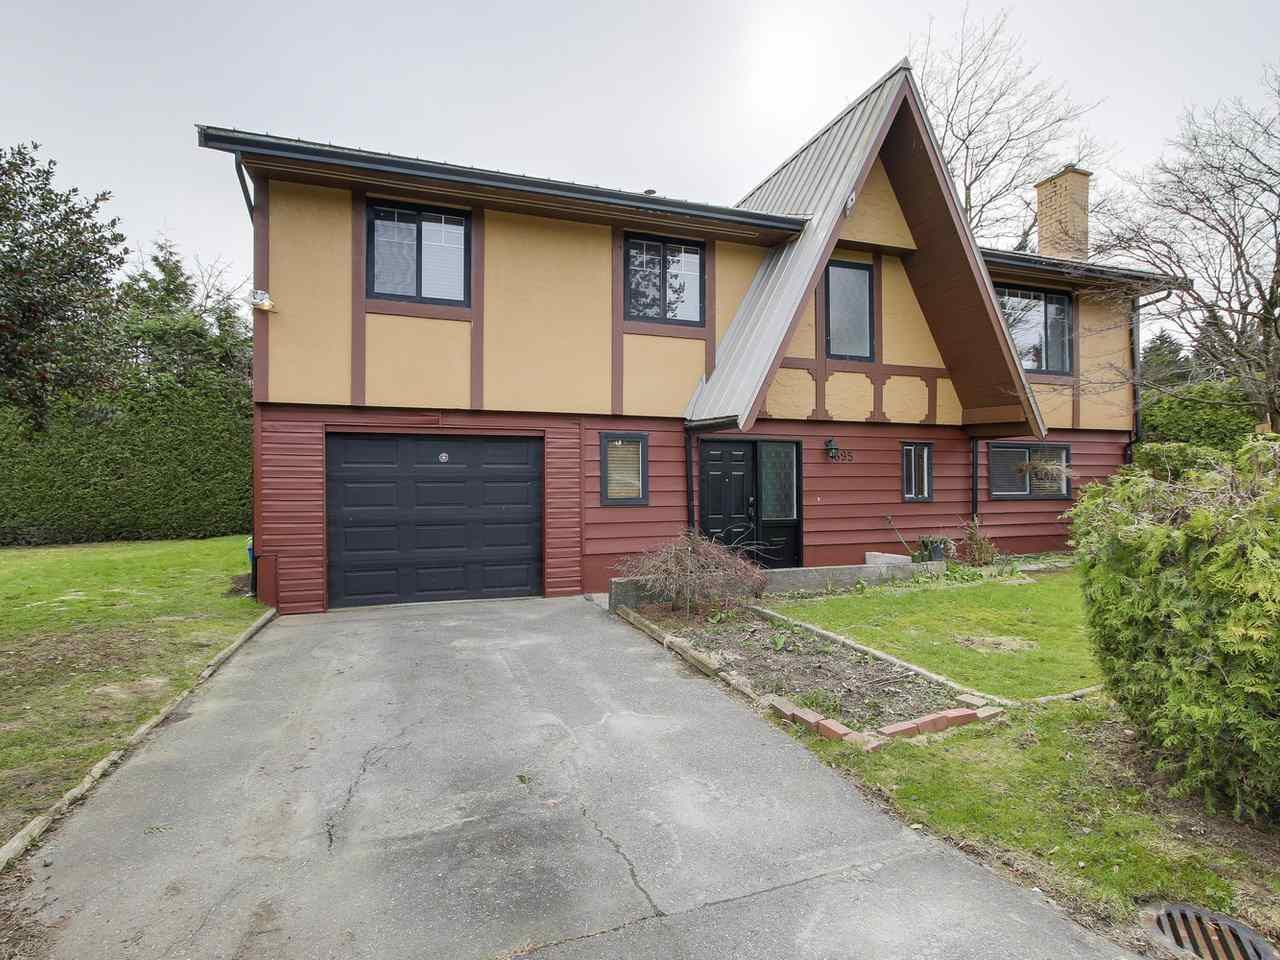 Main Photo: 695 EASTERBROOK Street in Coquitlam: Coquitlam West House for sale : MLS®# R2153171